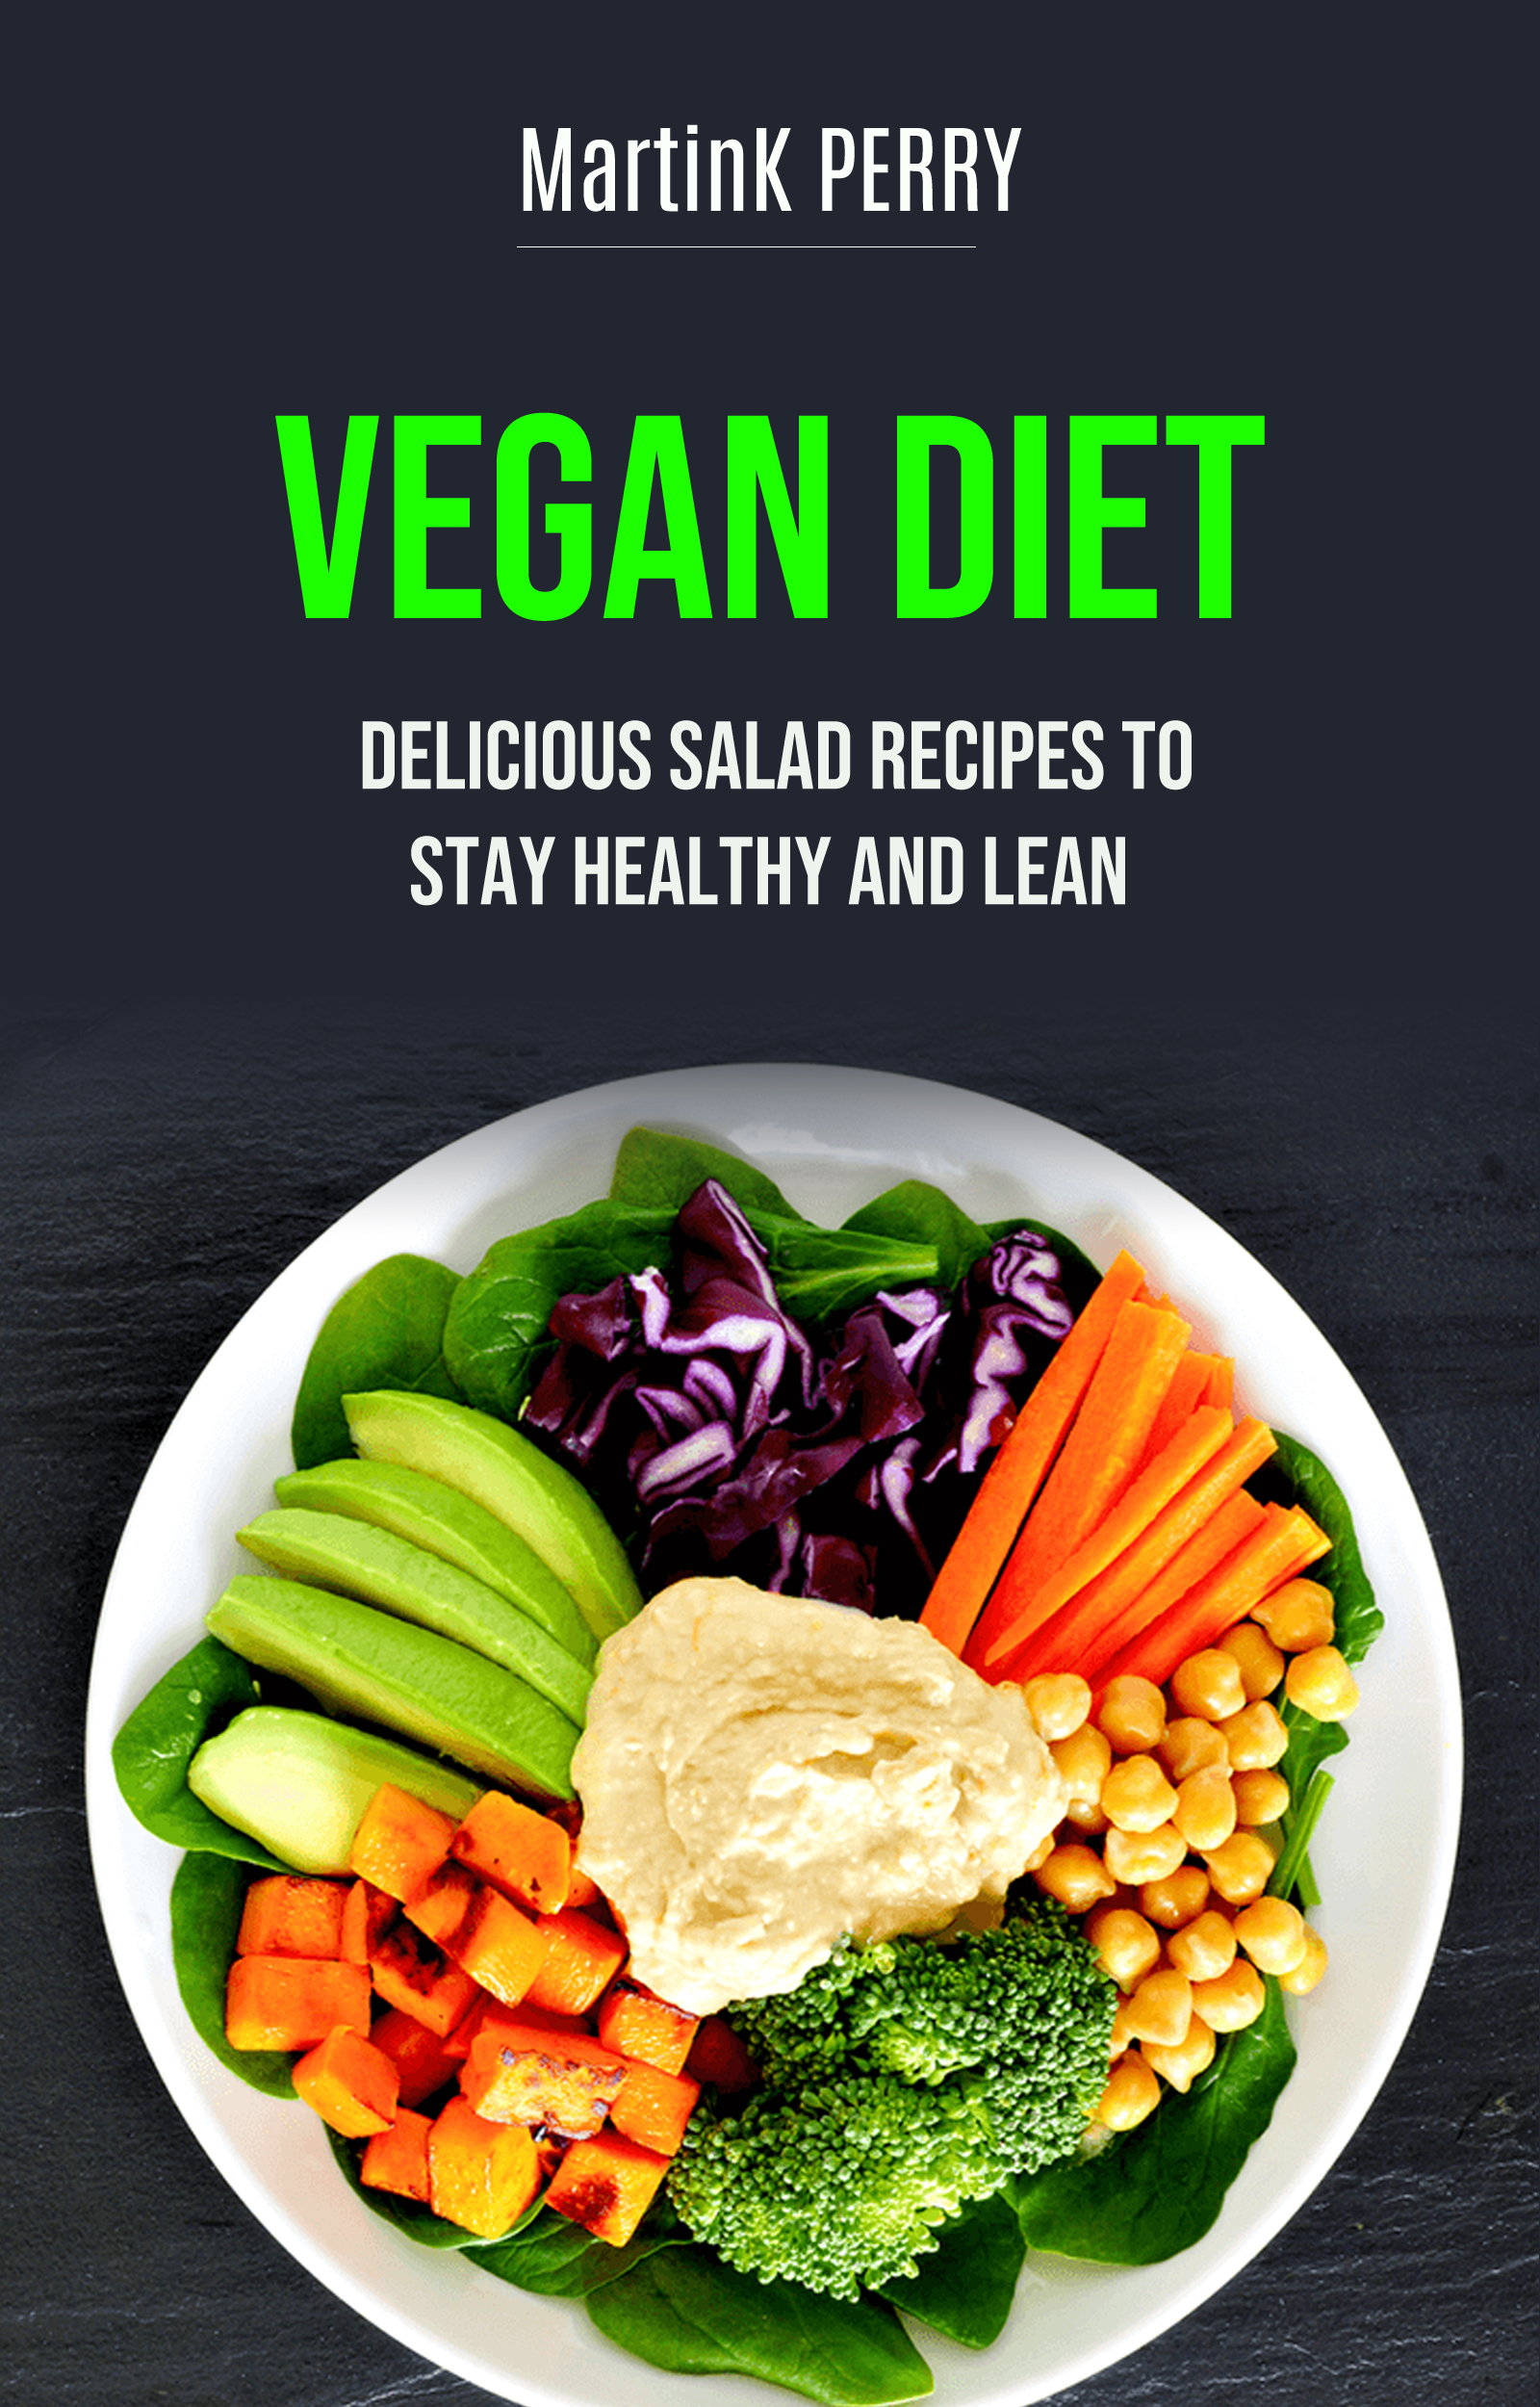 Vegan diet: delicious salad recipes to stay healthy and lean